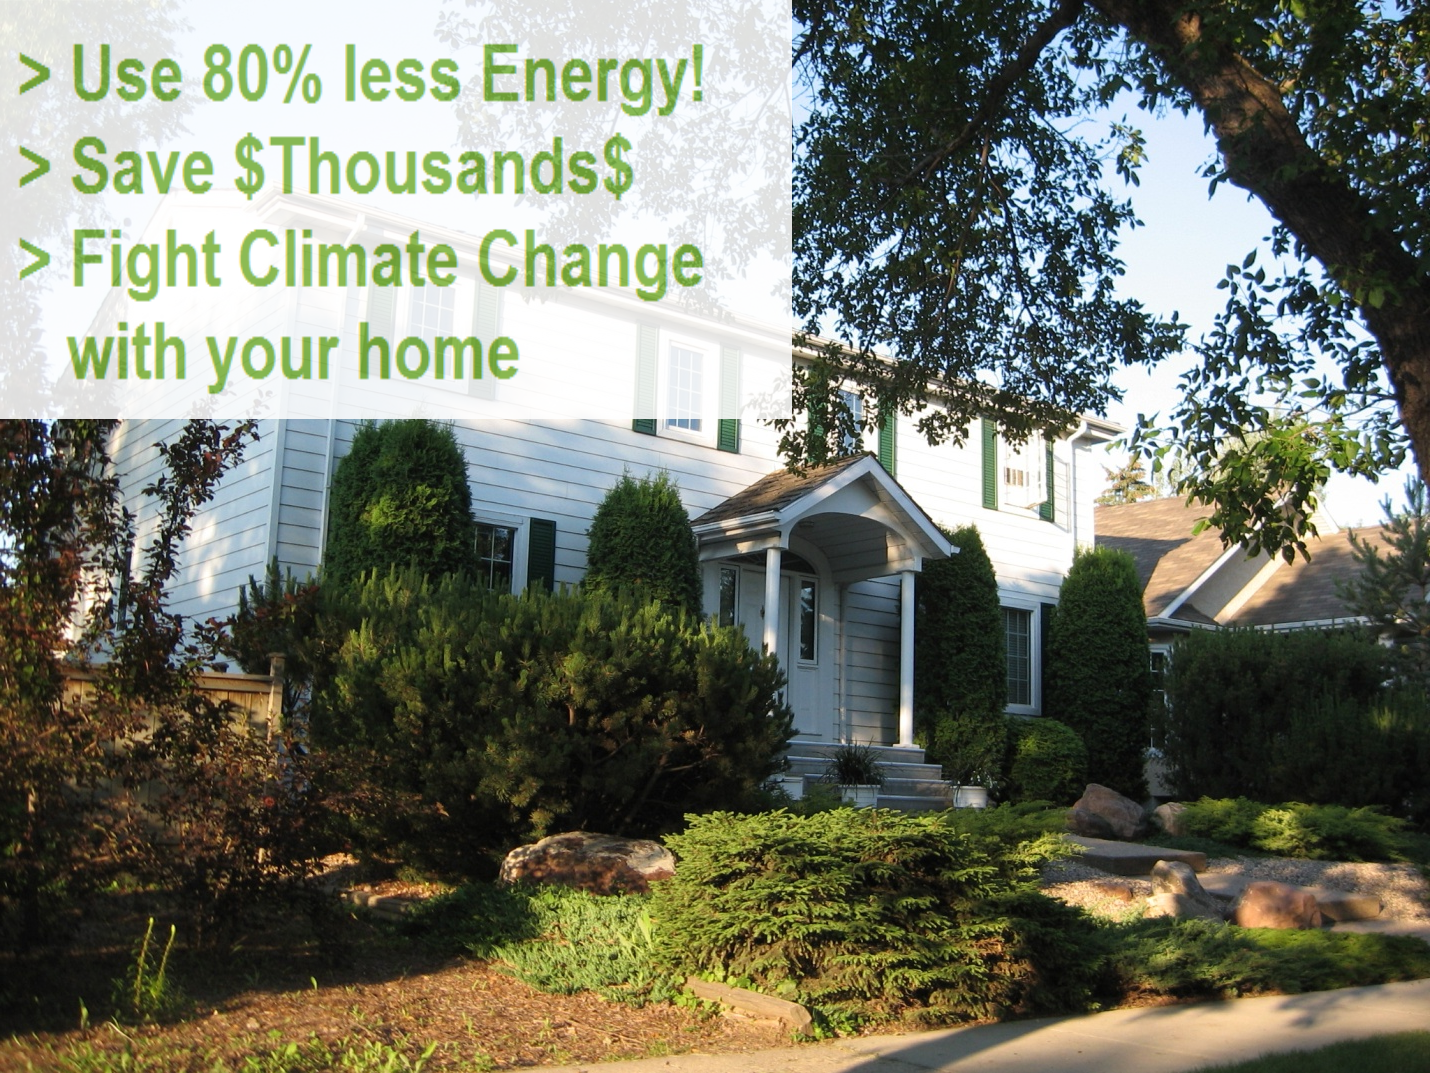 Fight Climate Change by starting with our homes